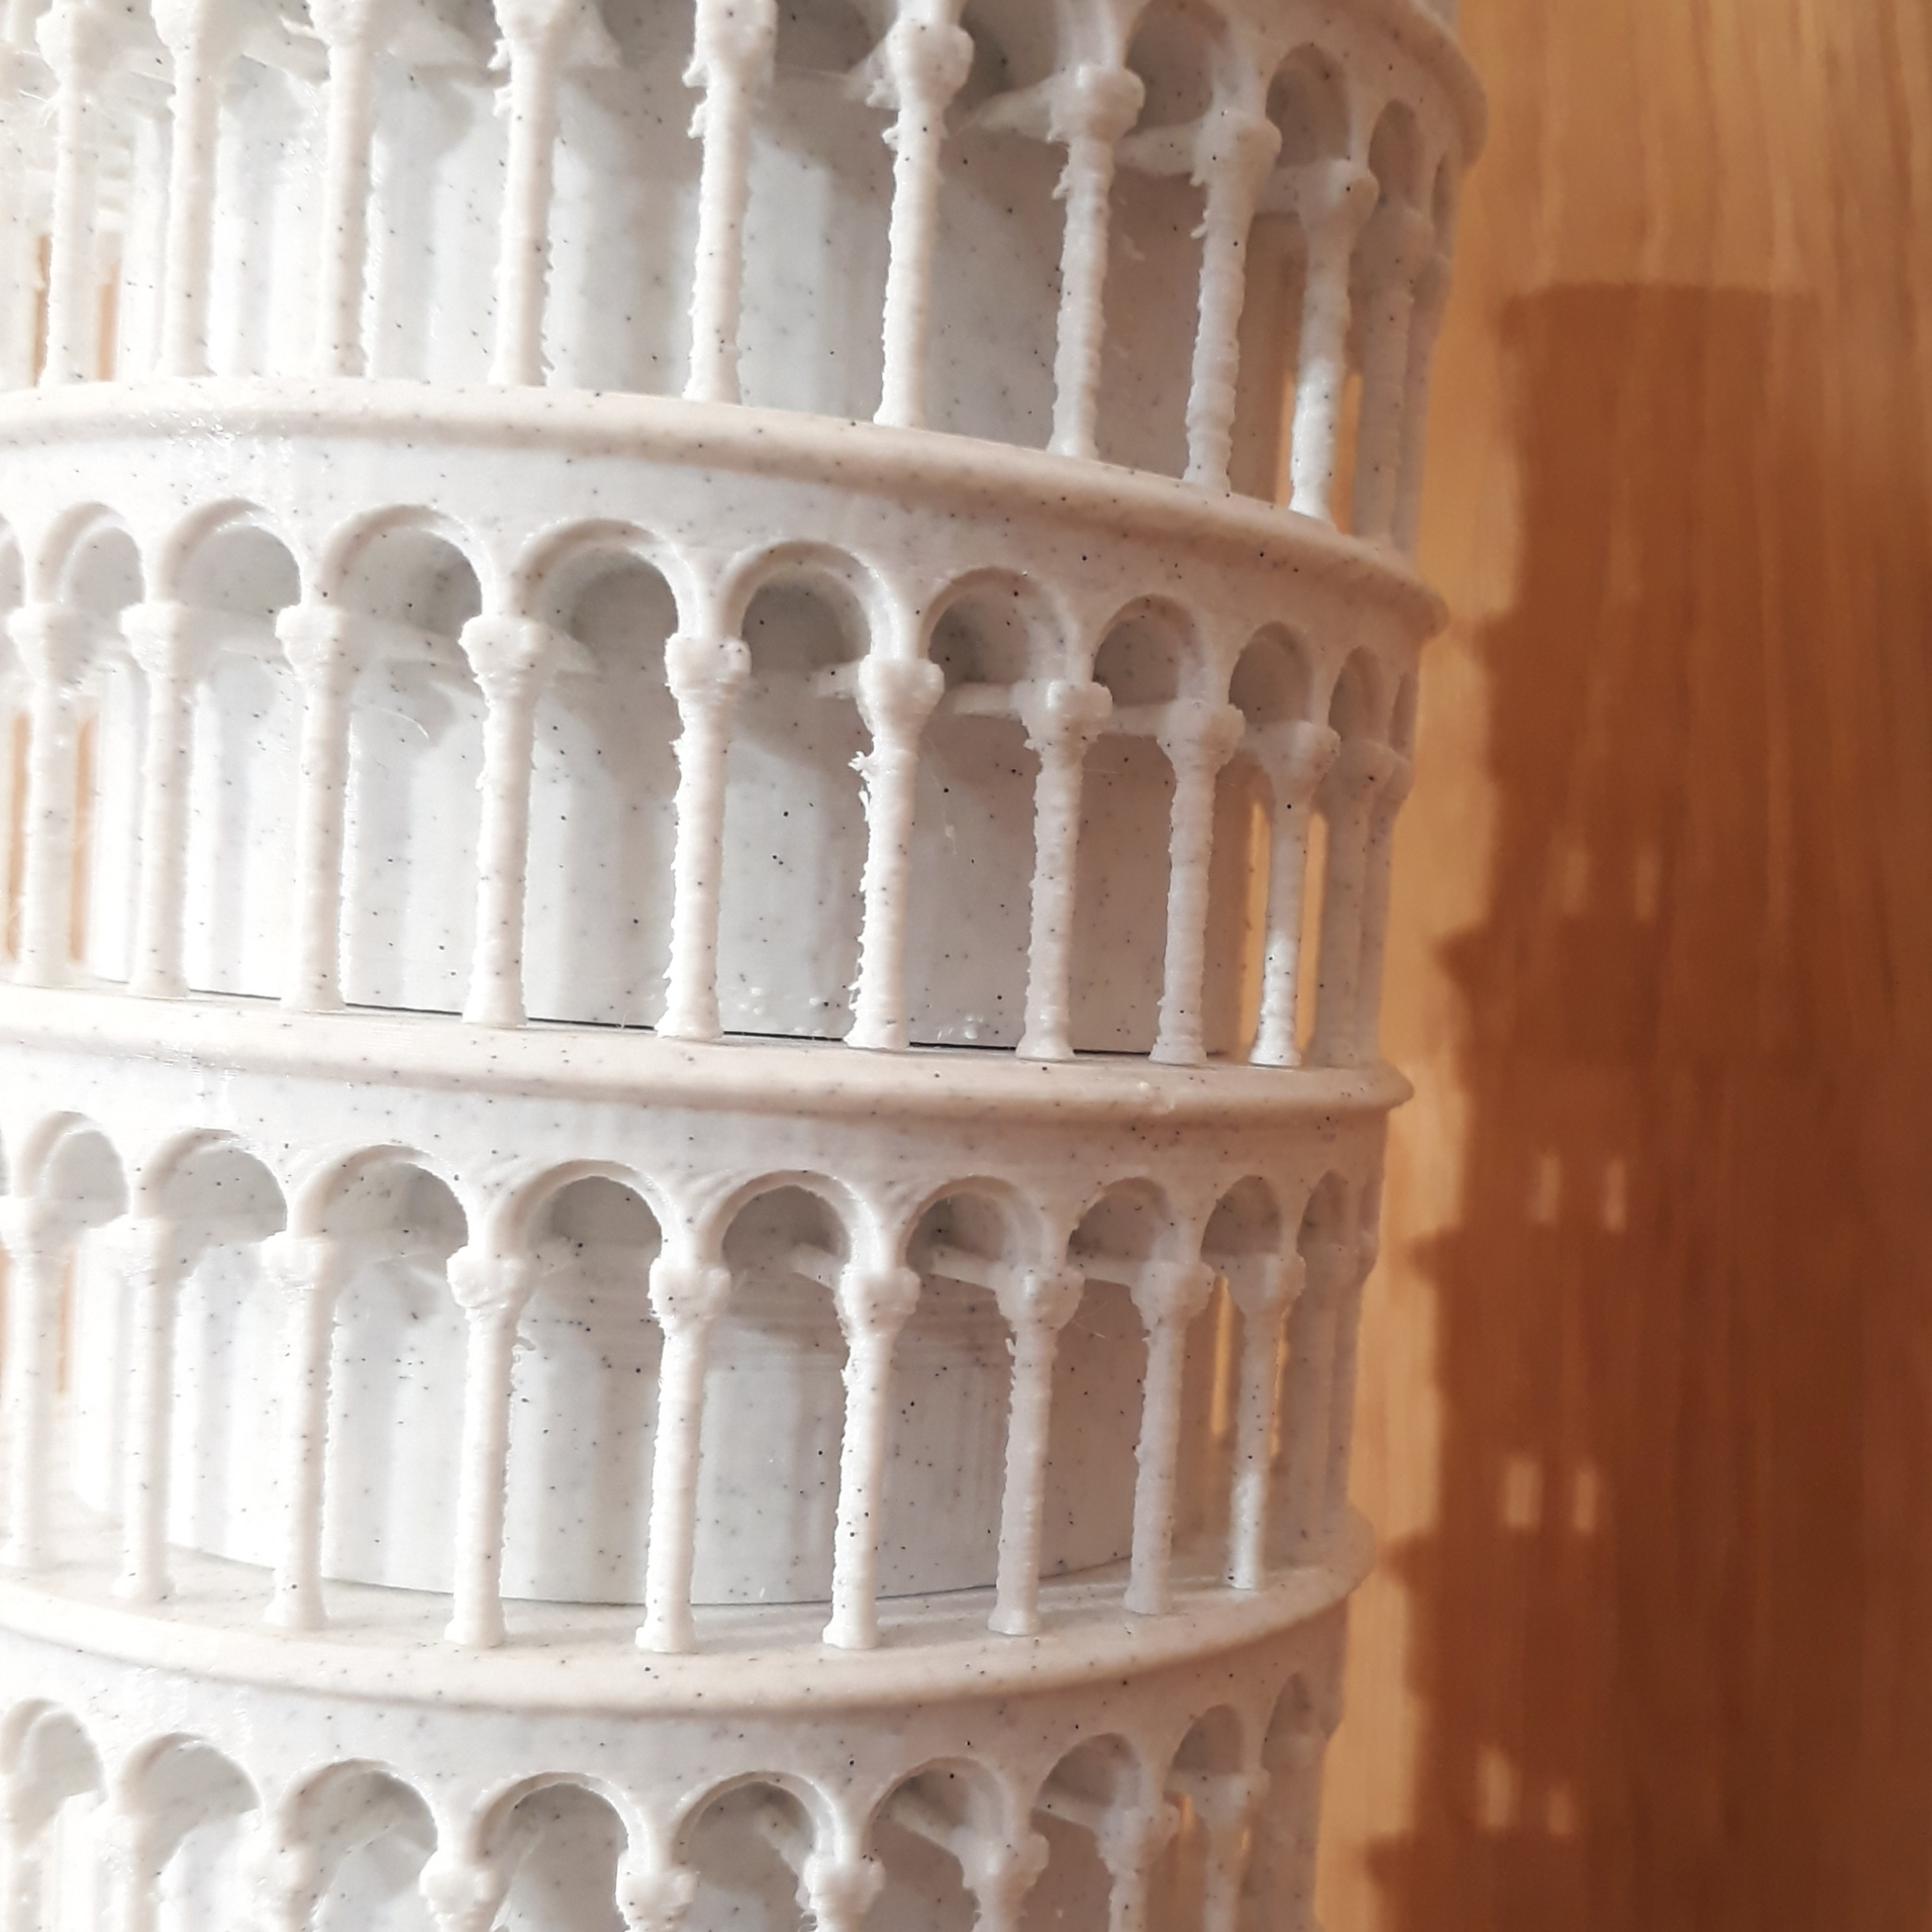 20200212_104057.jpg Download STL file Leaning Tower of Pisa • 3D printing object, Chrisibub